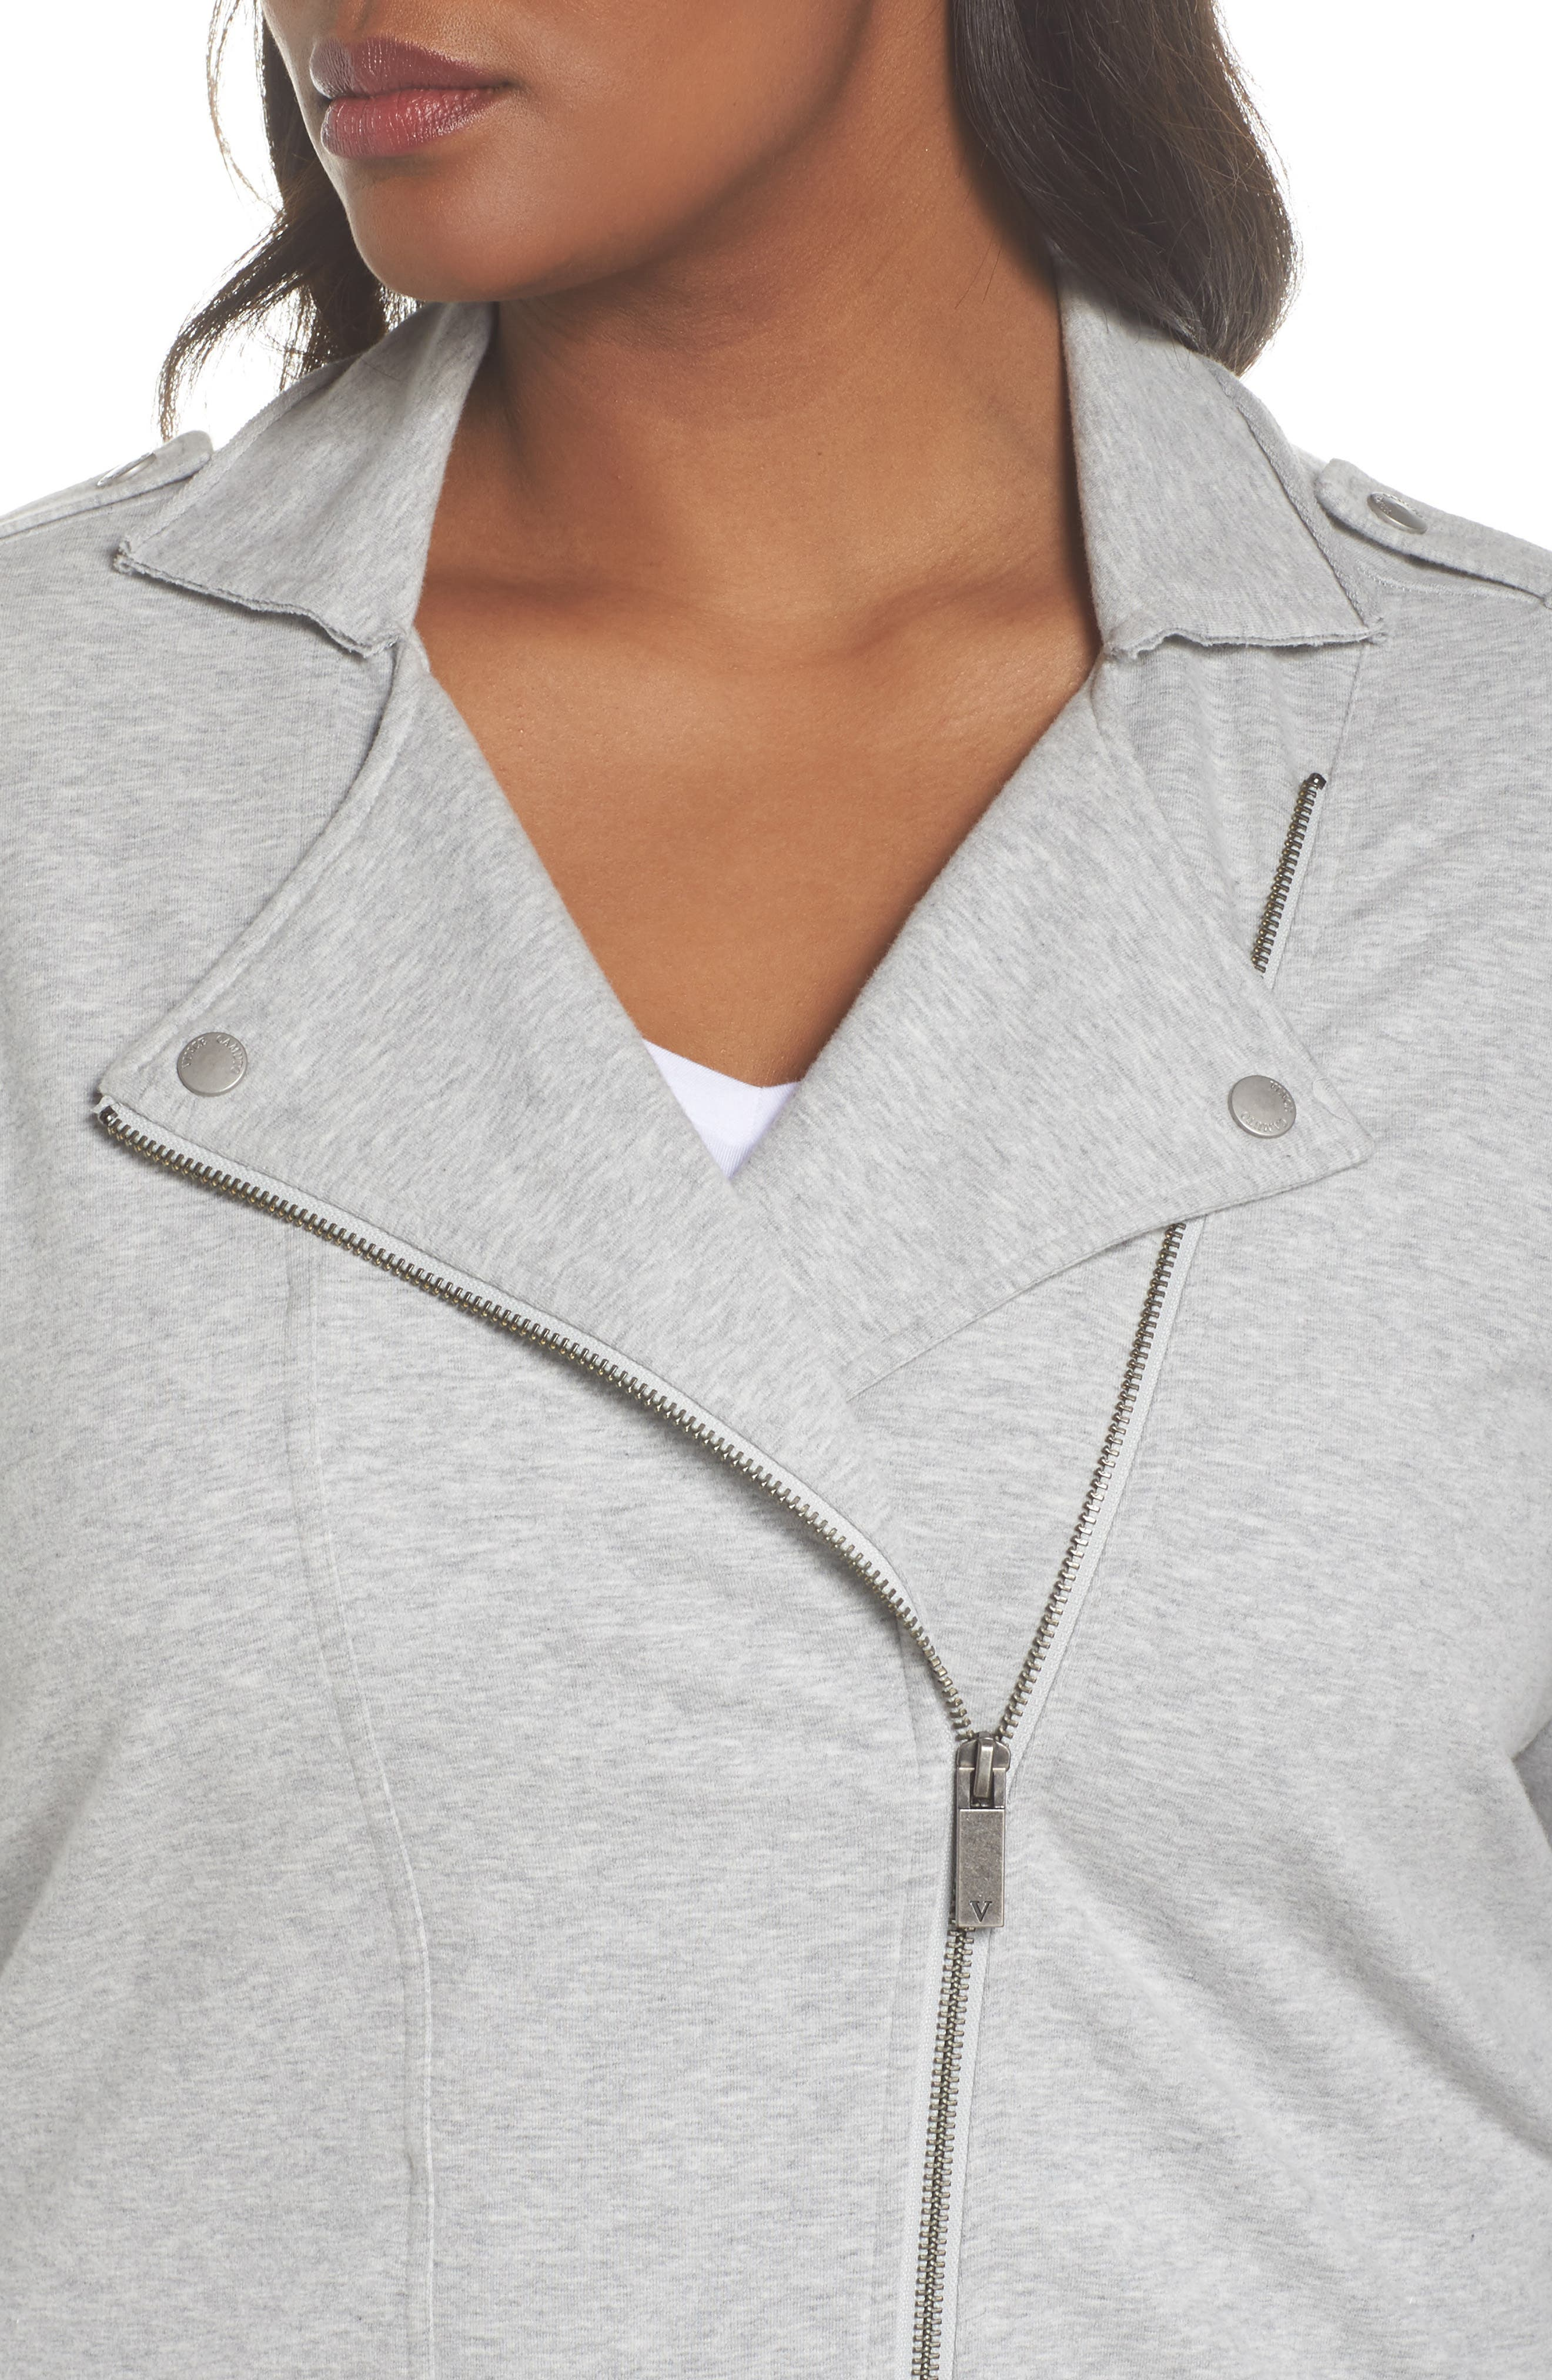 French Terry Moto Jacket,                             Alternate thumbnail 4, color,                             Grey Hthr